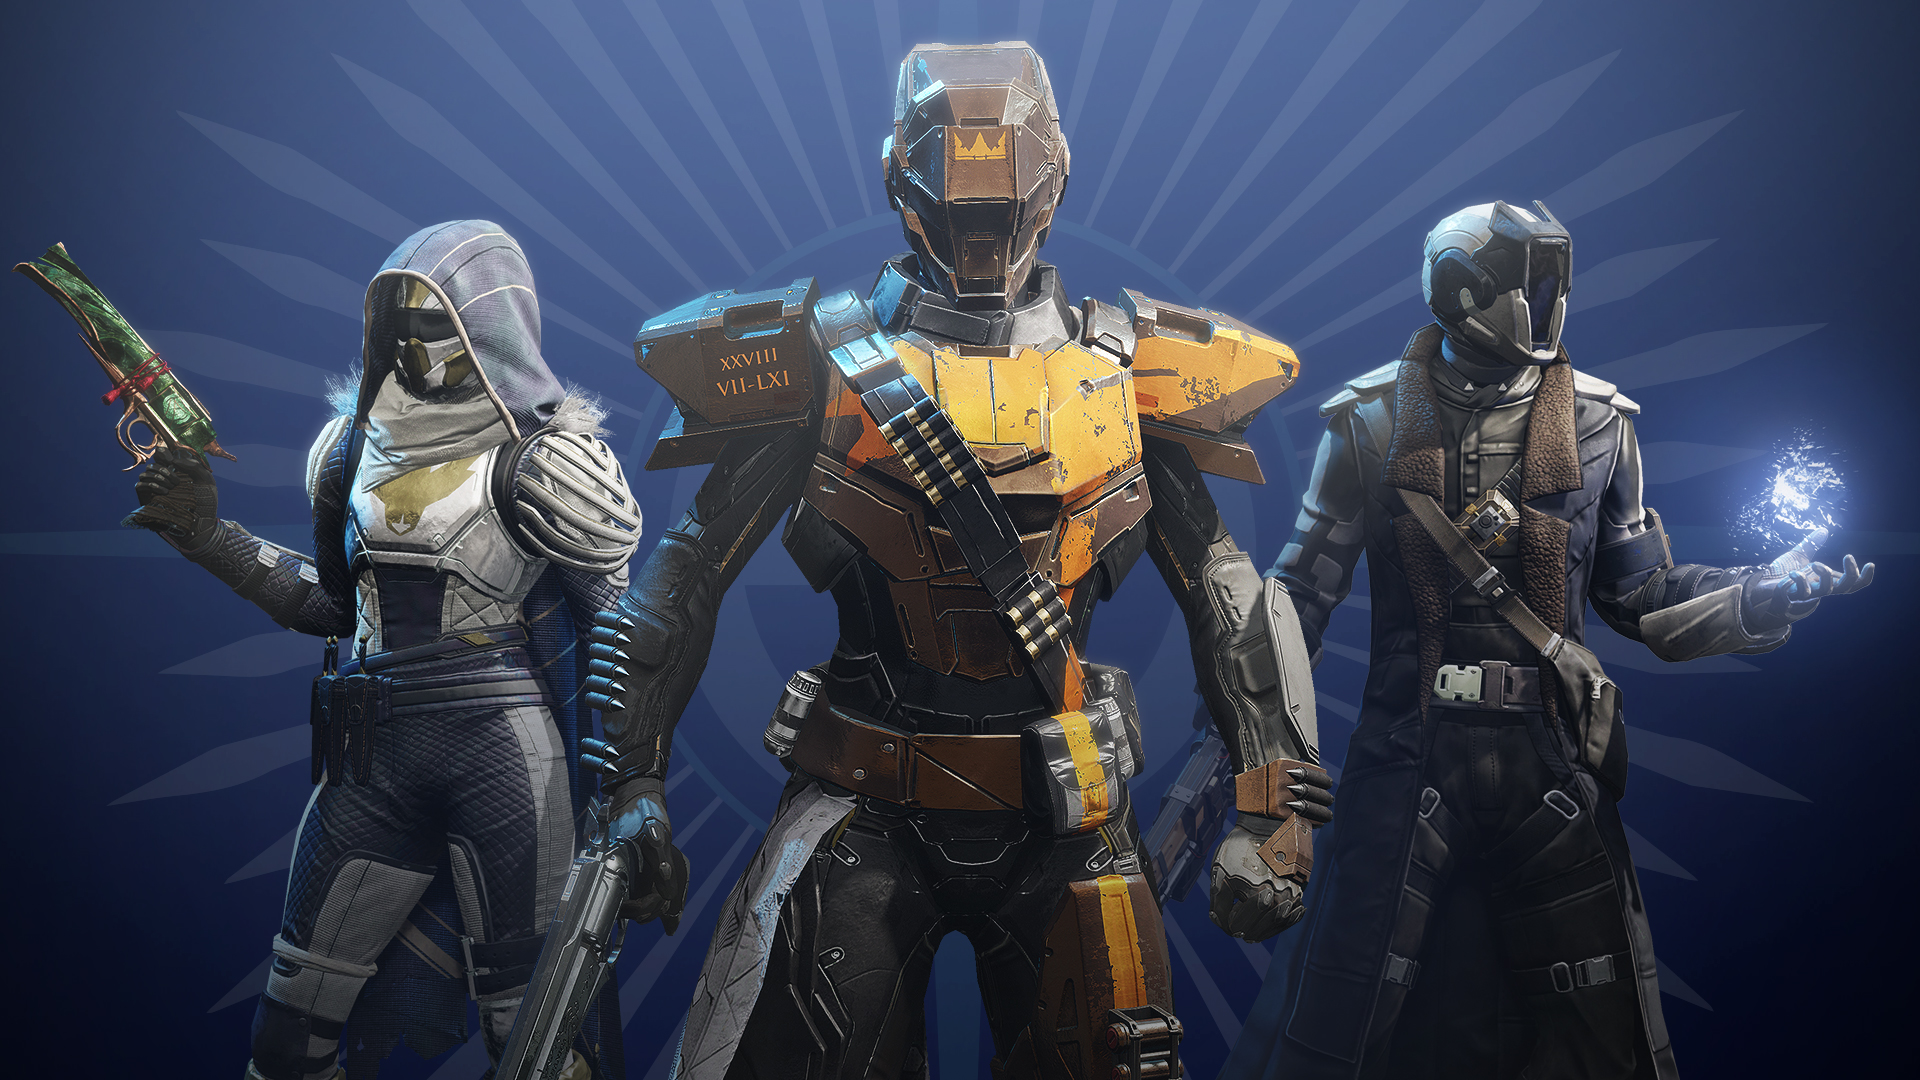 Destiny 2 is getting more direct money cosmetic purchases in Season of the Drifter